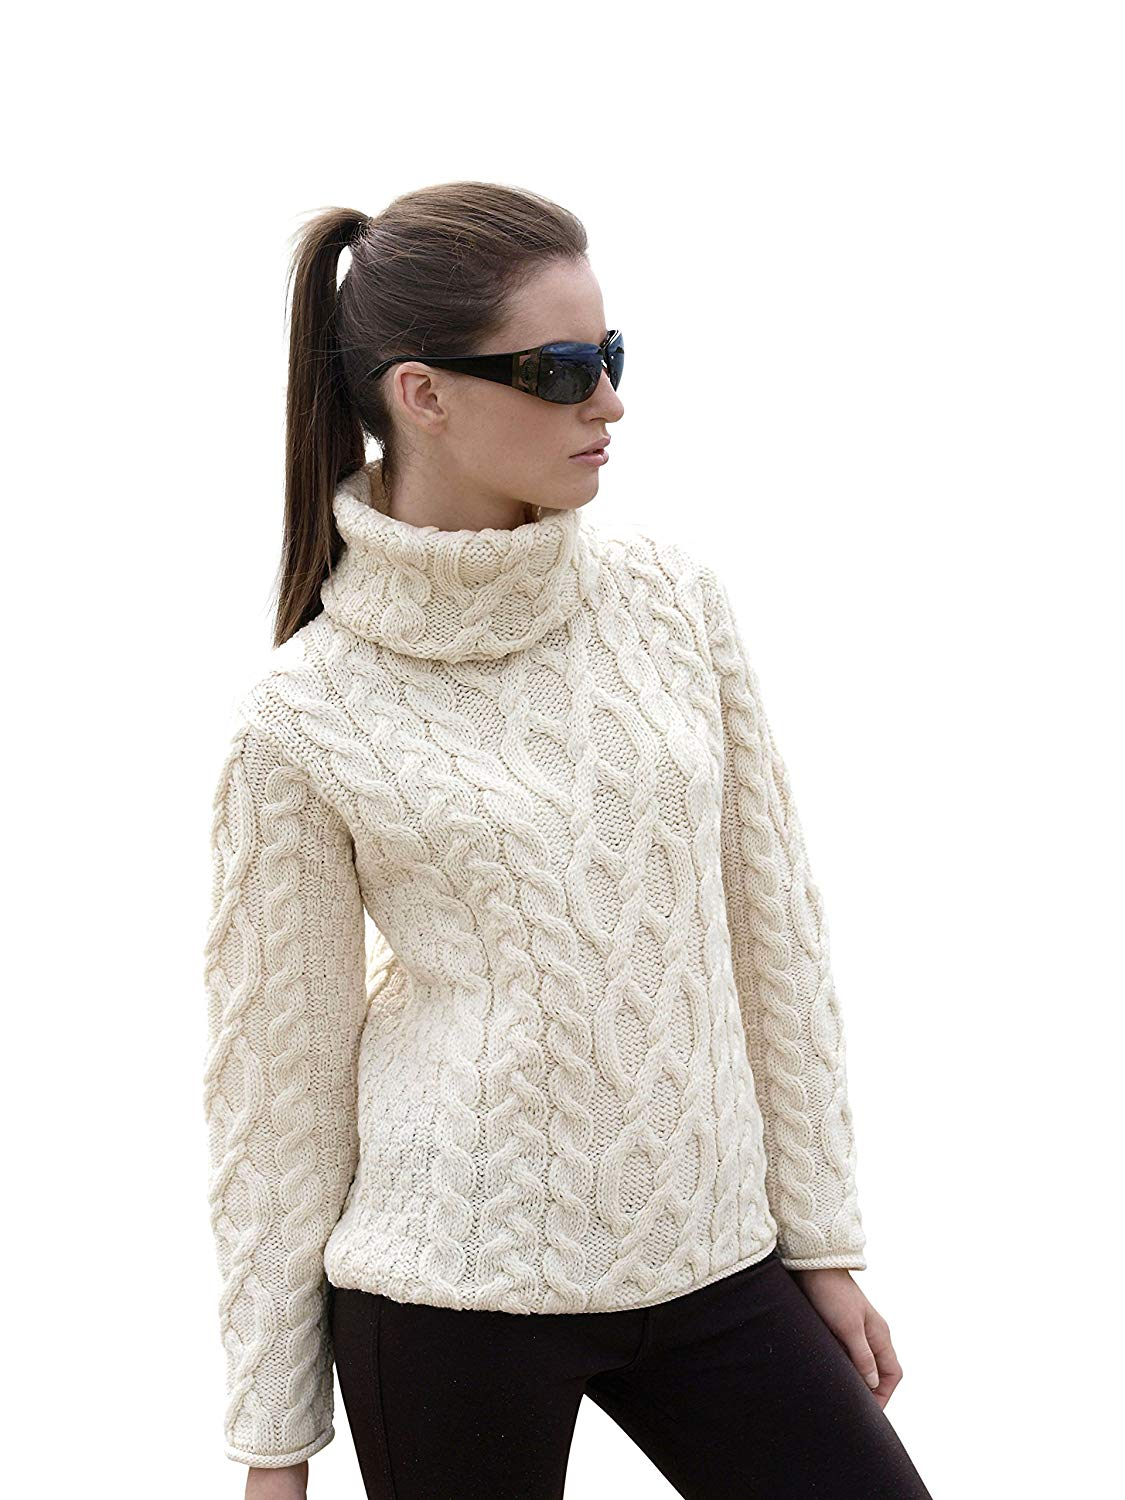 4a978526a4b Get Quotations · 100% Irish Soft Merino Wool Ladies Turtle Neck Sweater By  West End Knitwear